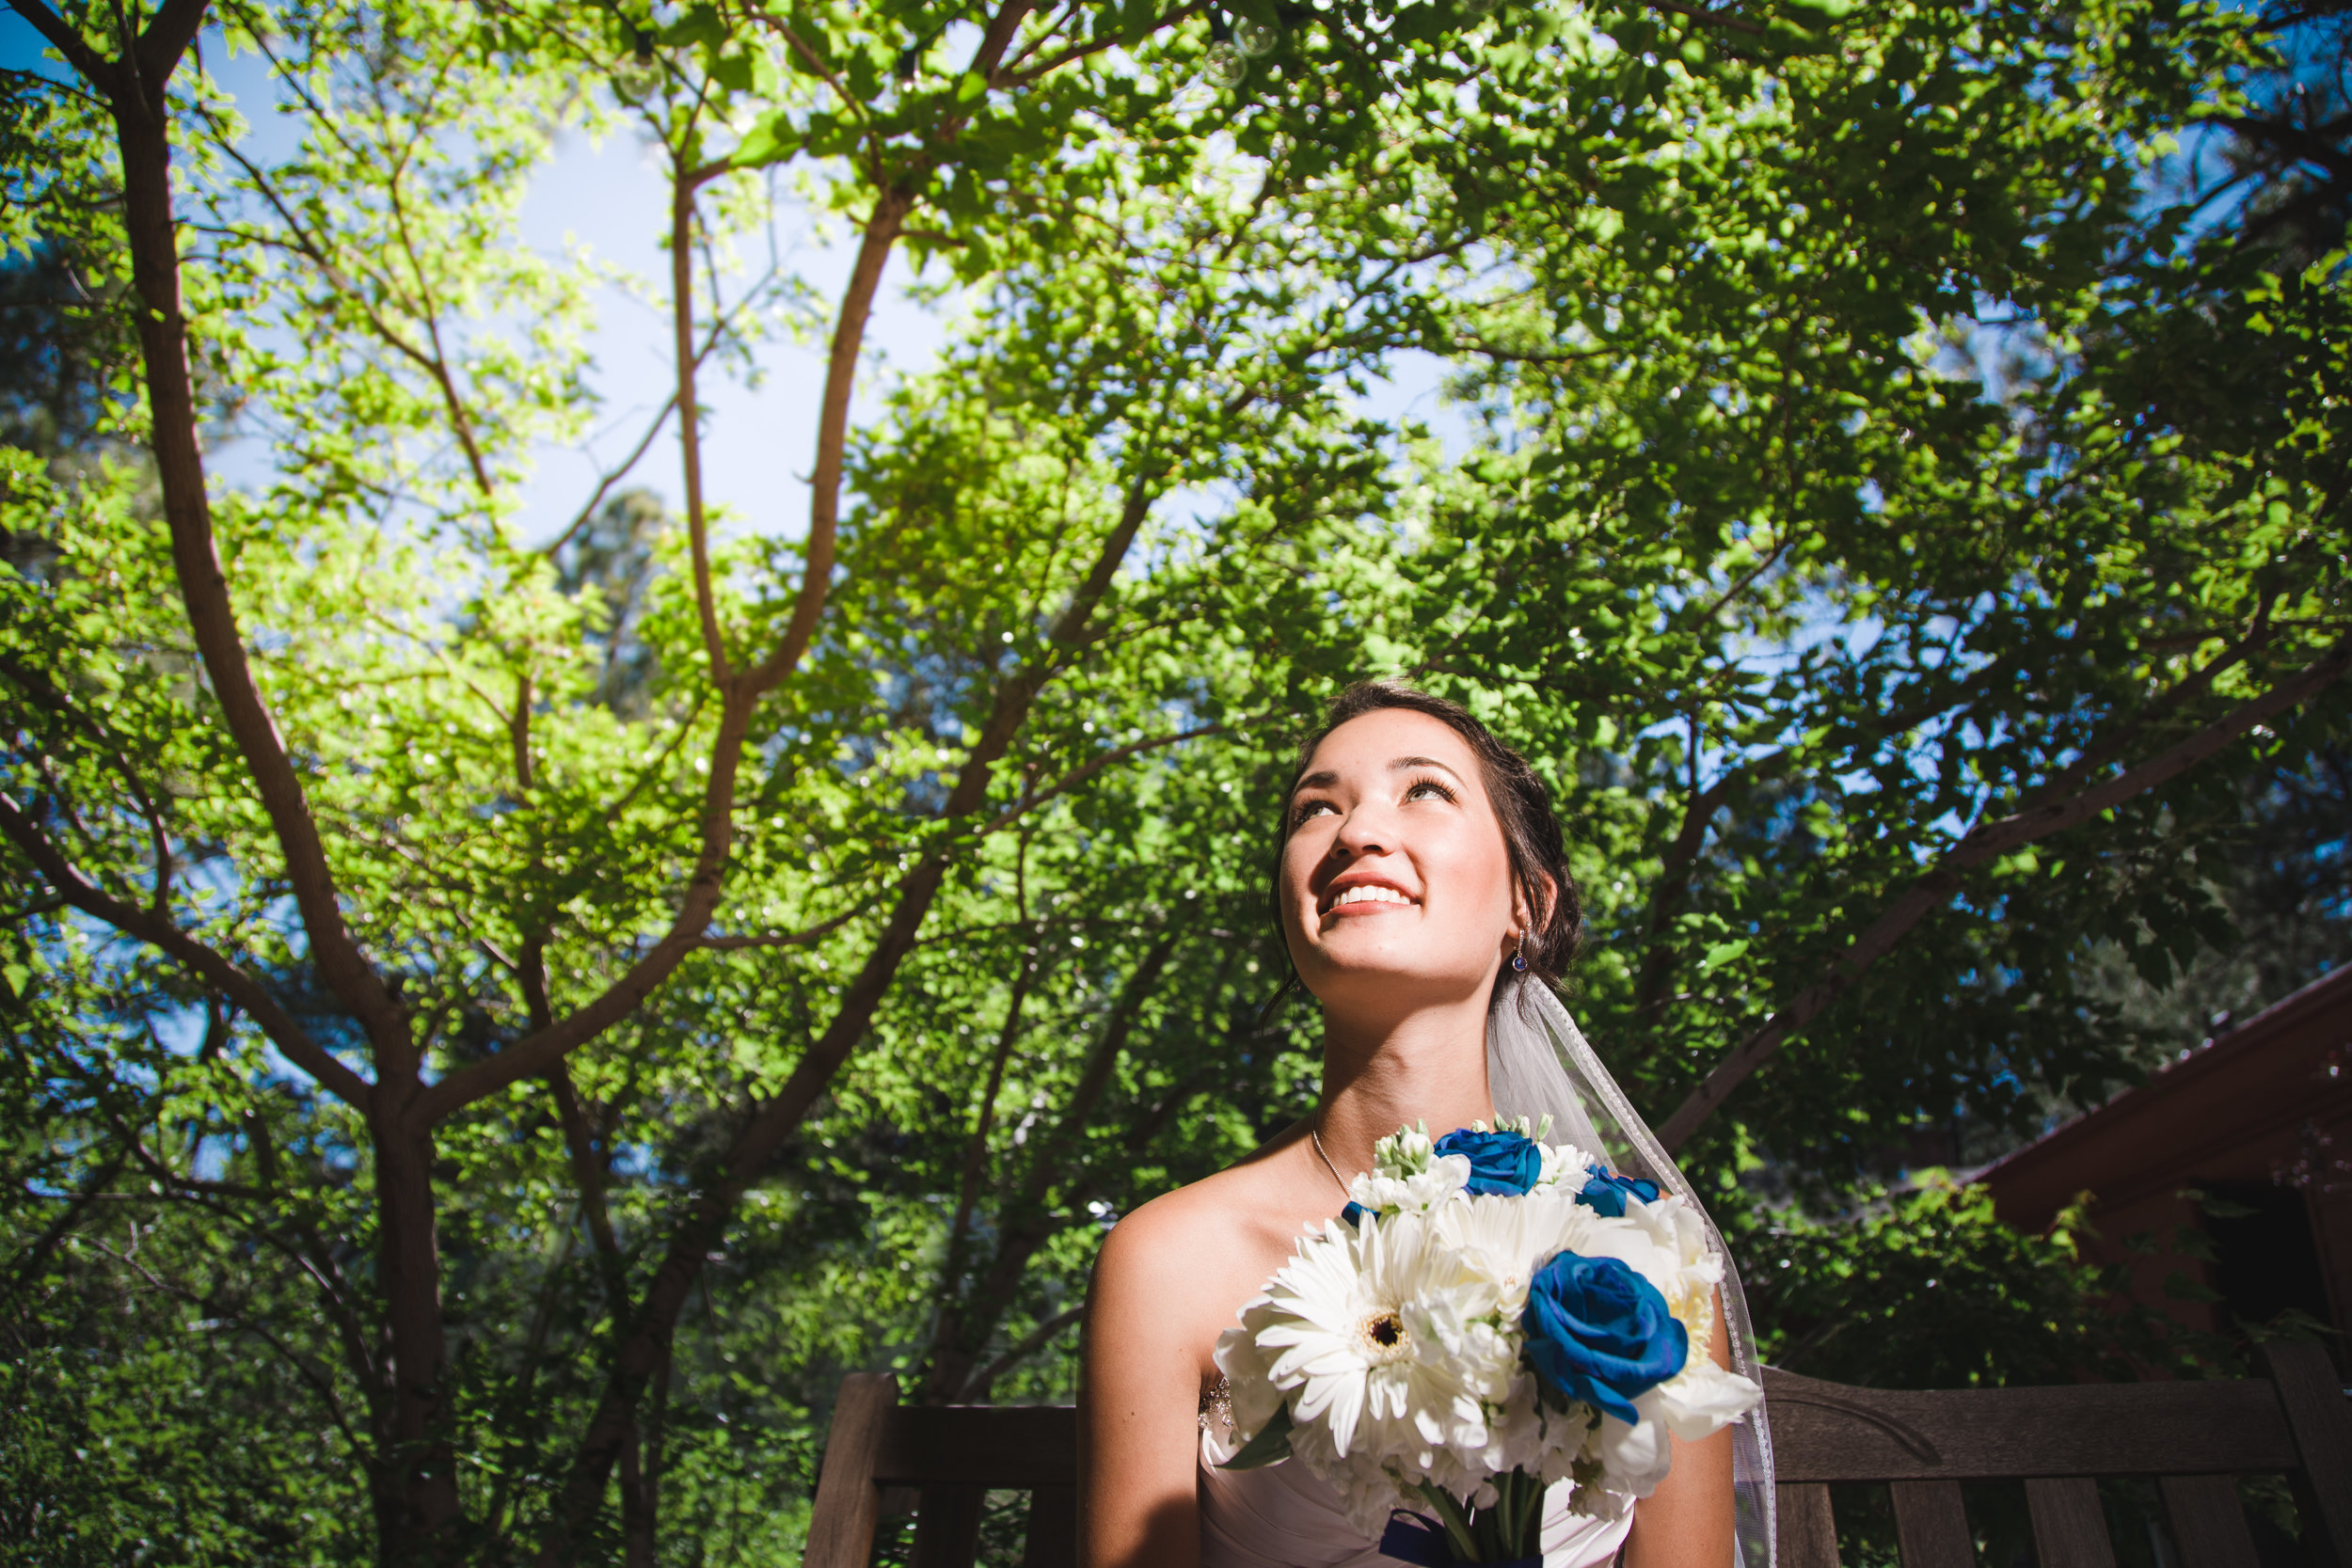 flagstaff-wedding-photography-73.jpg